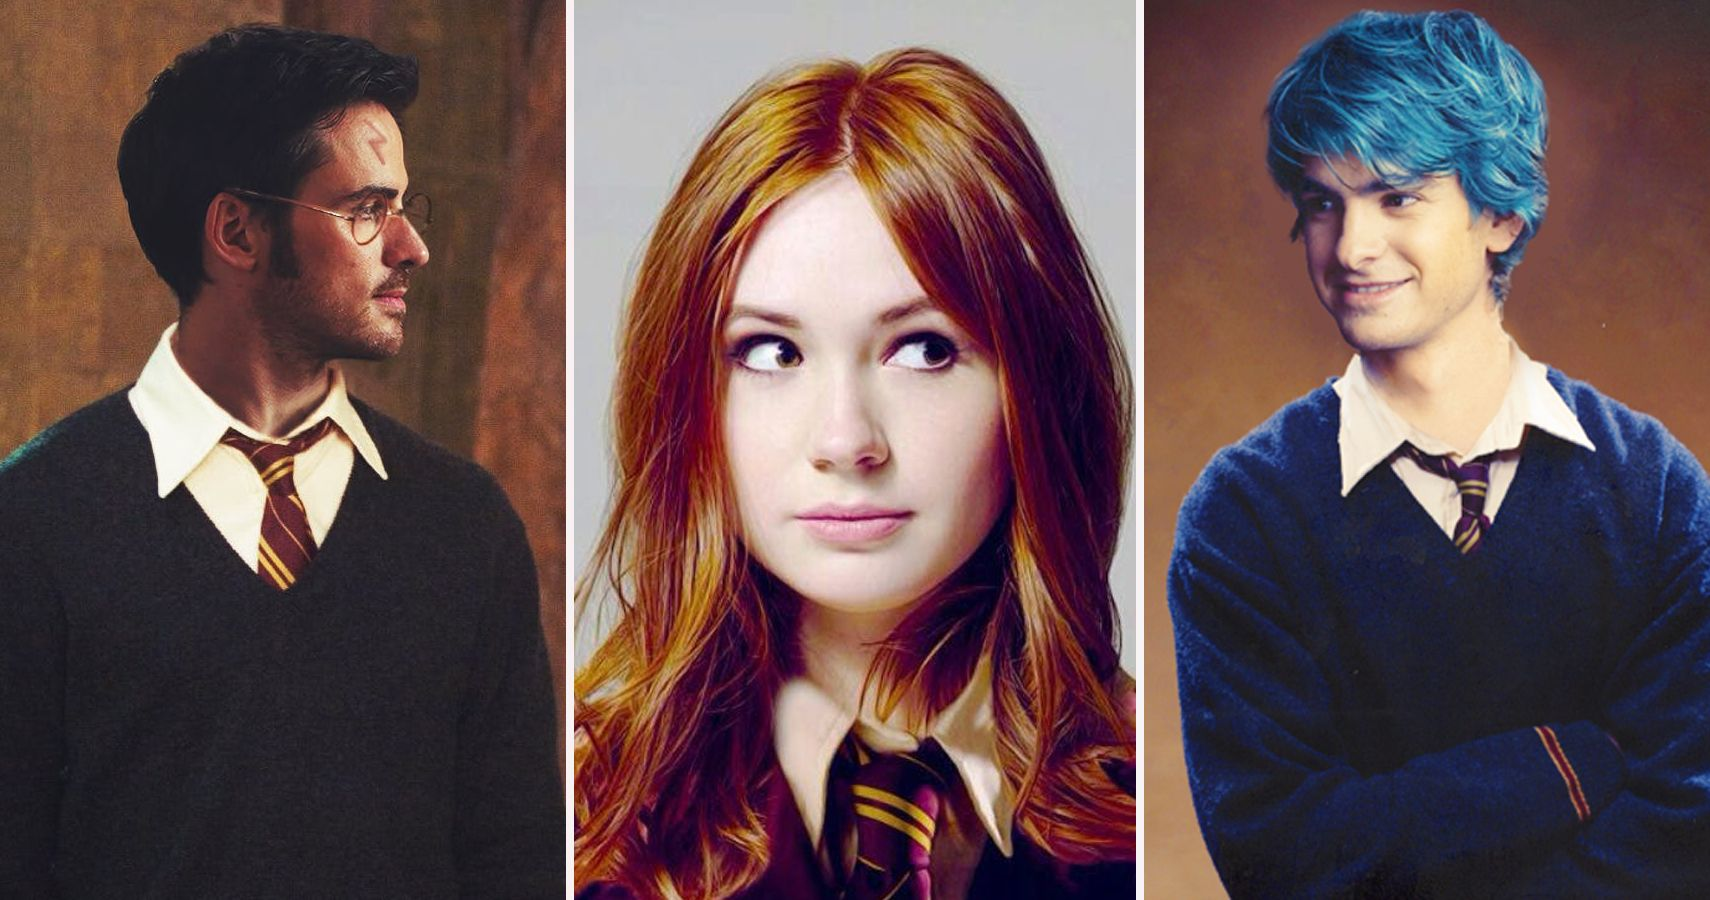 Harry Potter: 10 Photoshop Fancastings Better Than The